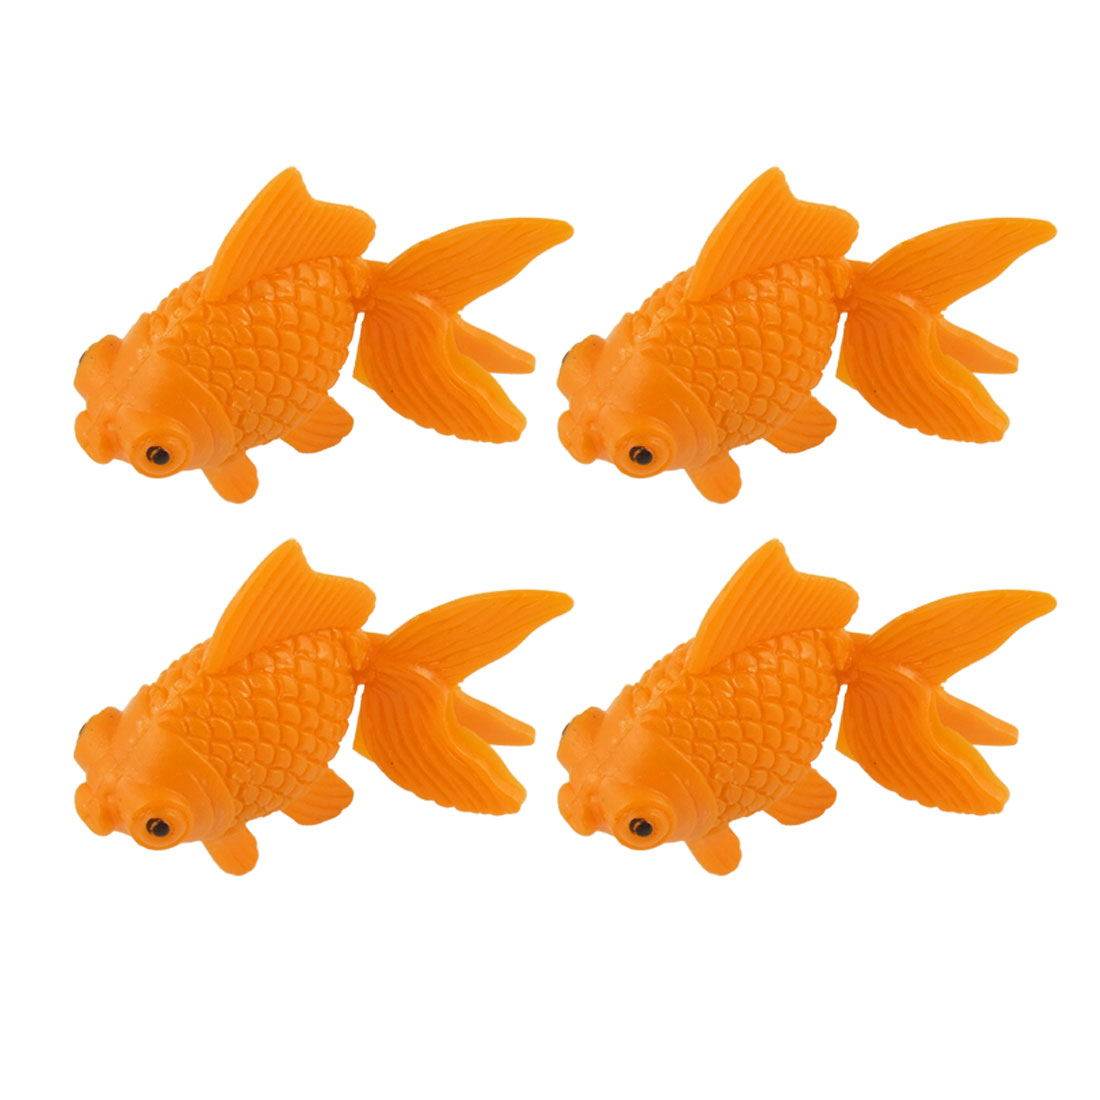 Orange Plastic Carp Fish Decor 4 Pcs for Aquarium Tank